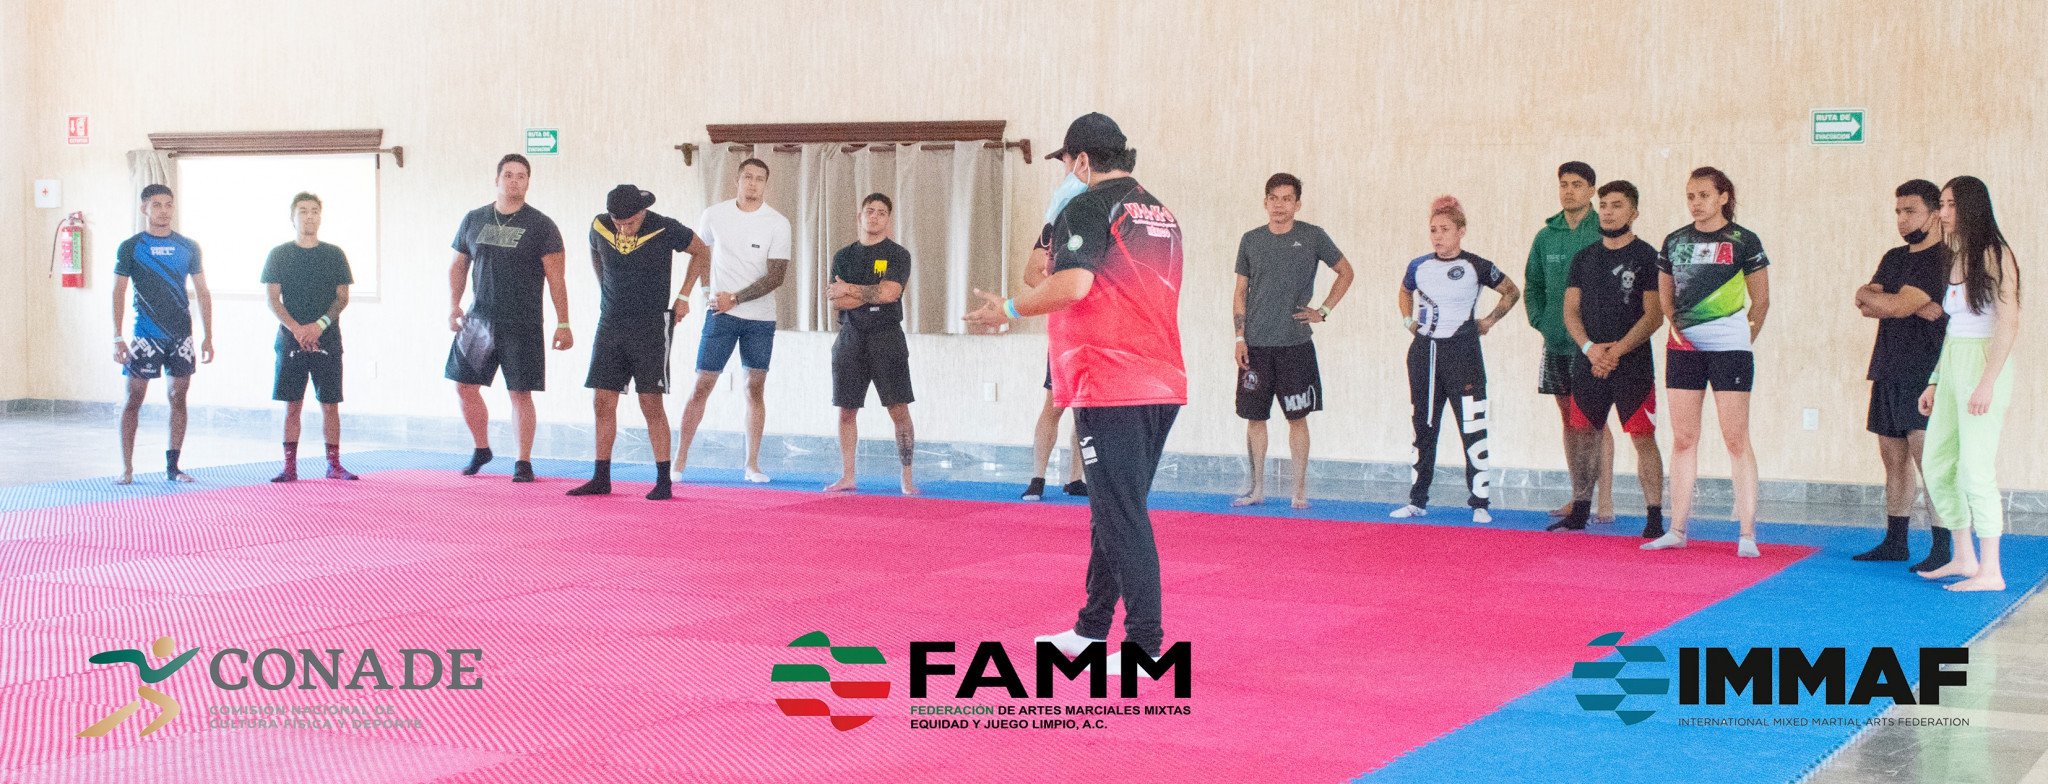 Mexican Mixed Martial Arts Federation holds gathering of athletes and coaches in build-up to IMMAF World Championships